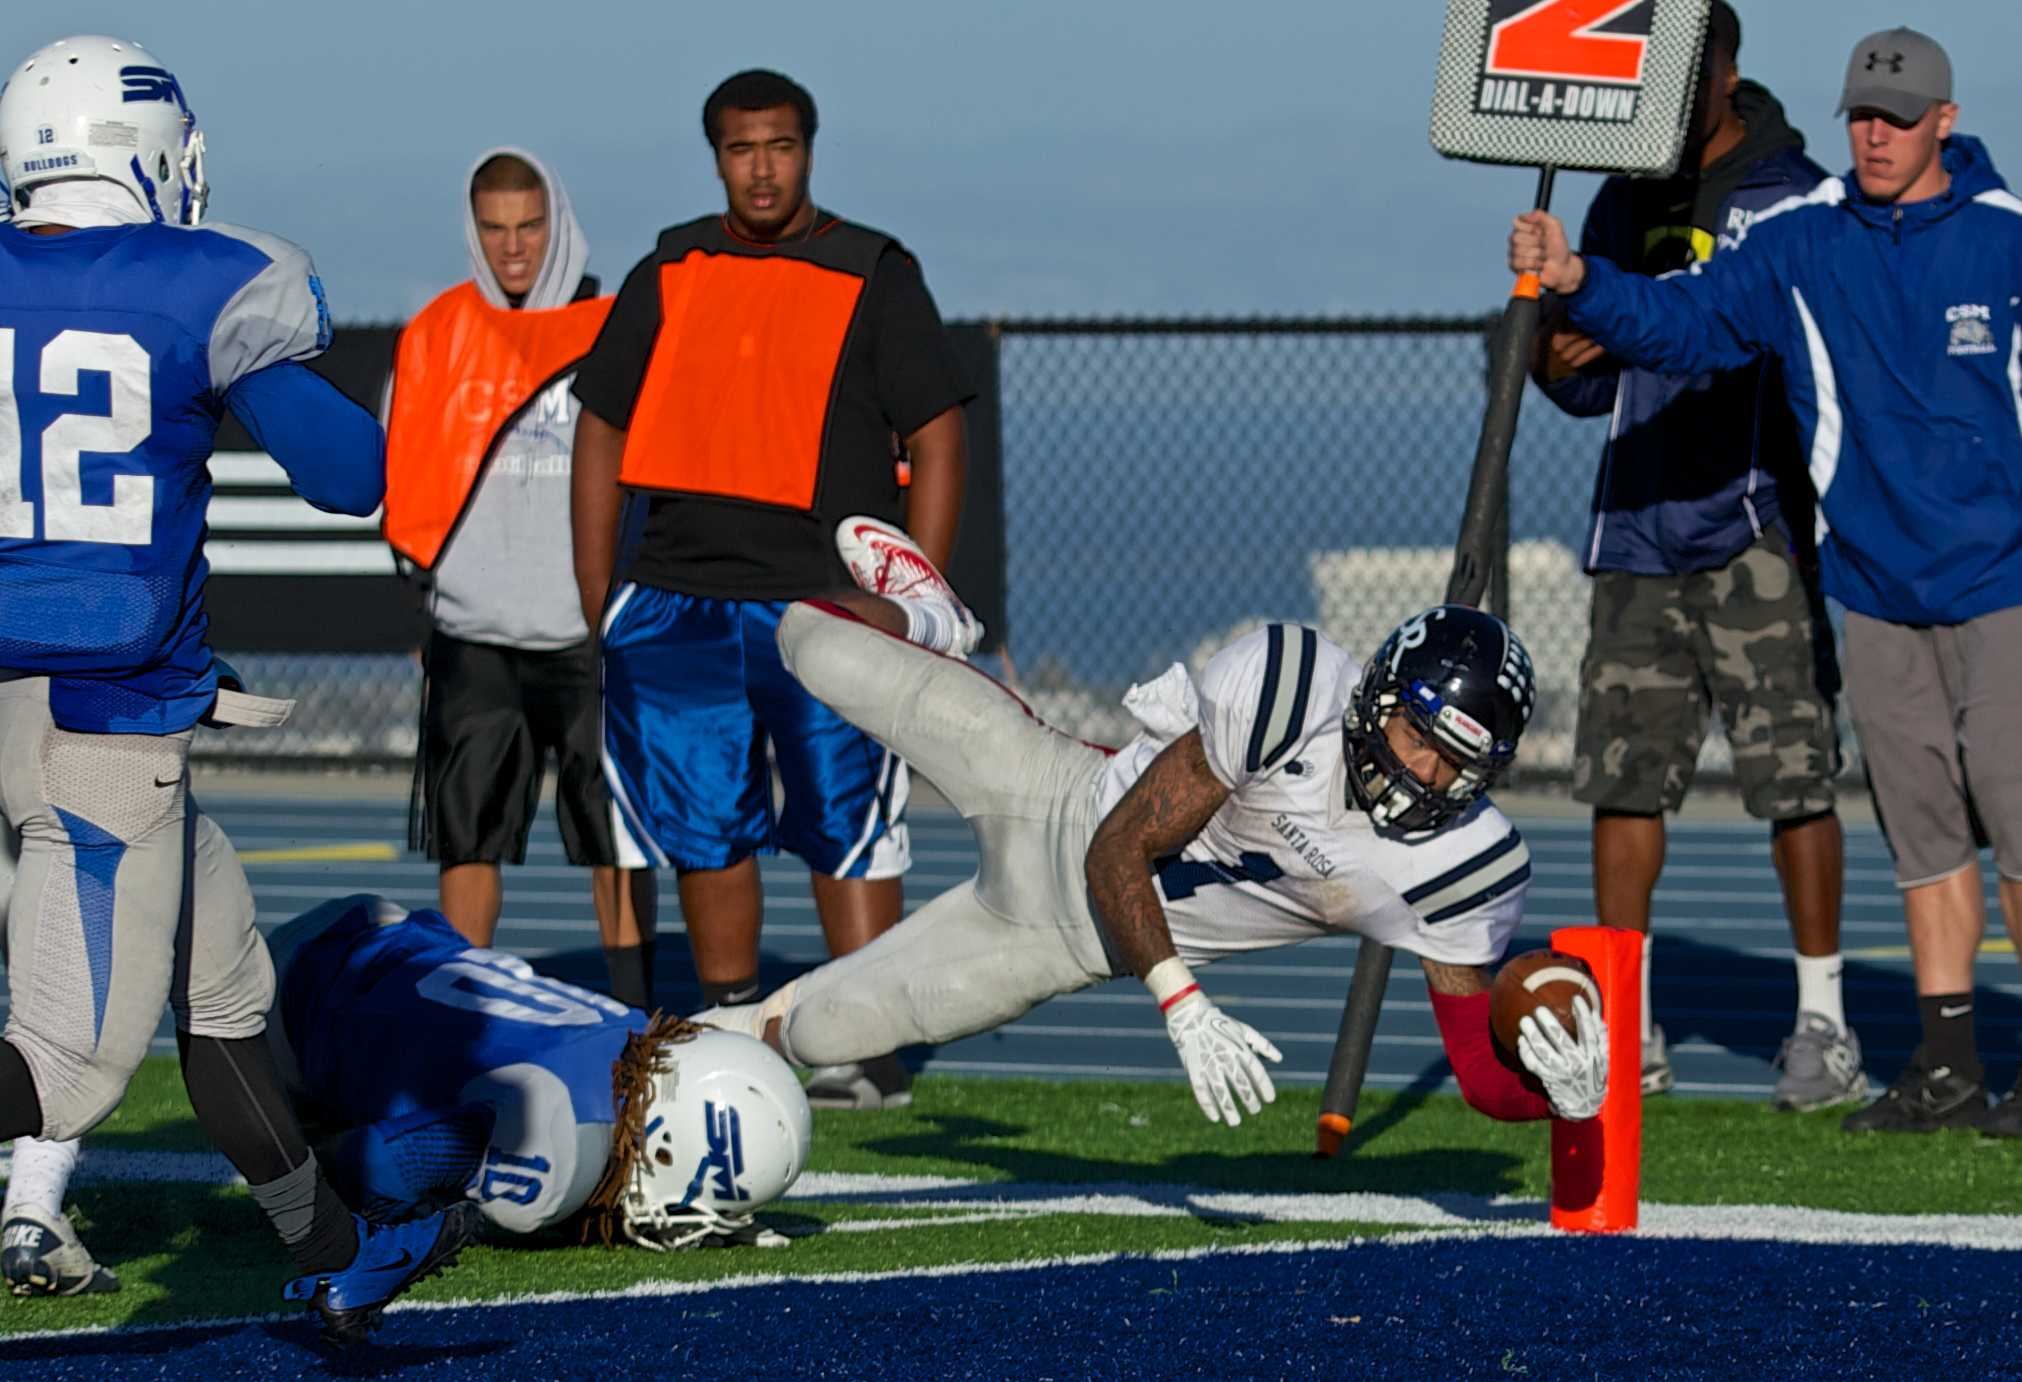 Andre Davis breaks the plane of the end zone scoring a touchdown against College of San Mateo Nov. 16 in San Mateo.